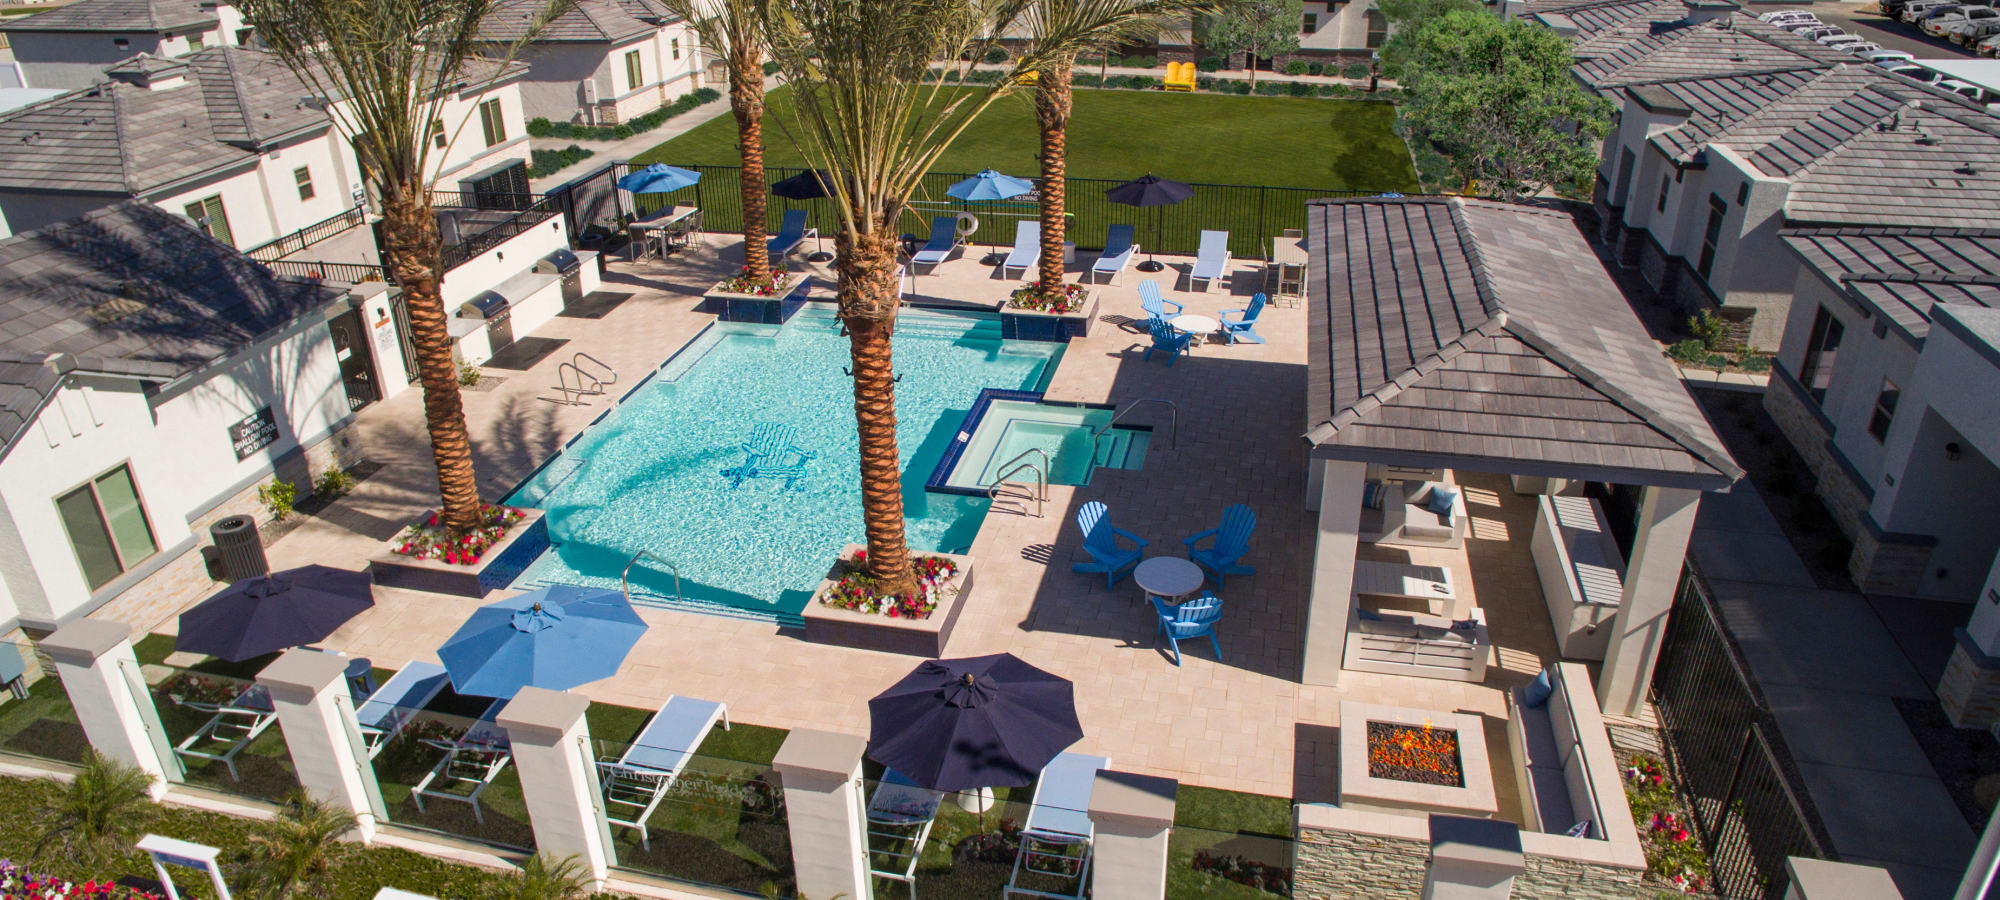 Aerial view of the pool area at Christopher Todd Communities On Mountain View in Surprise, Arizona